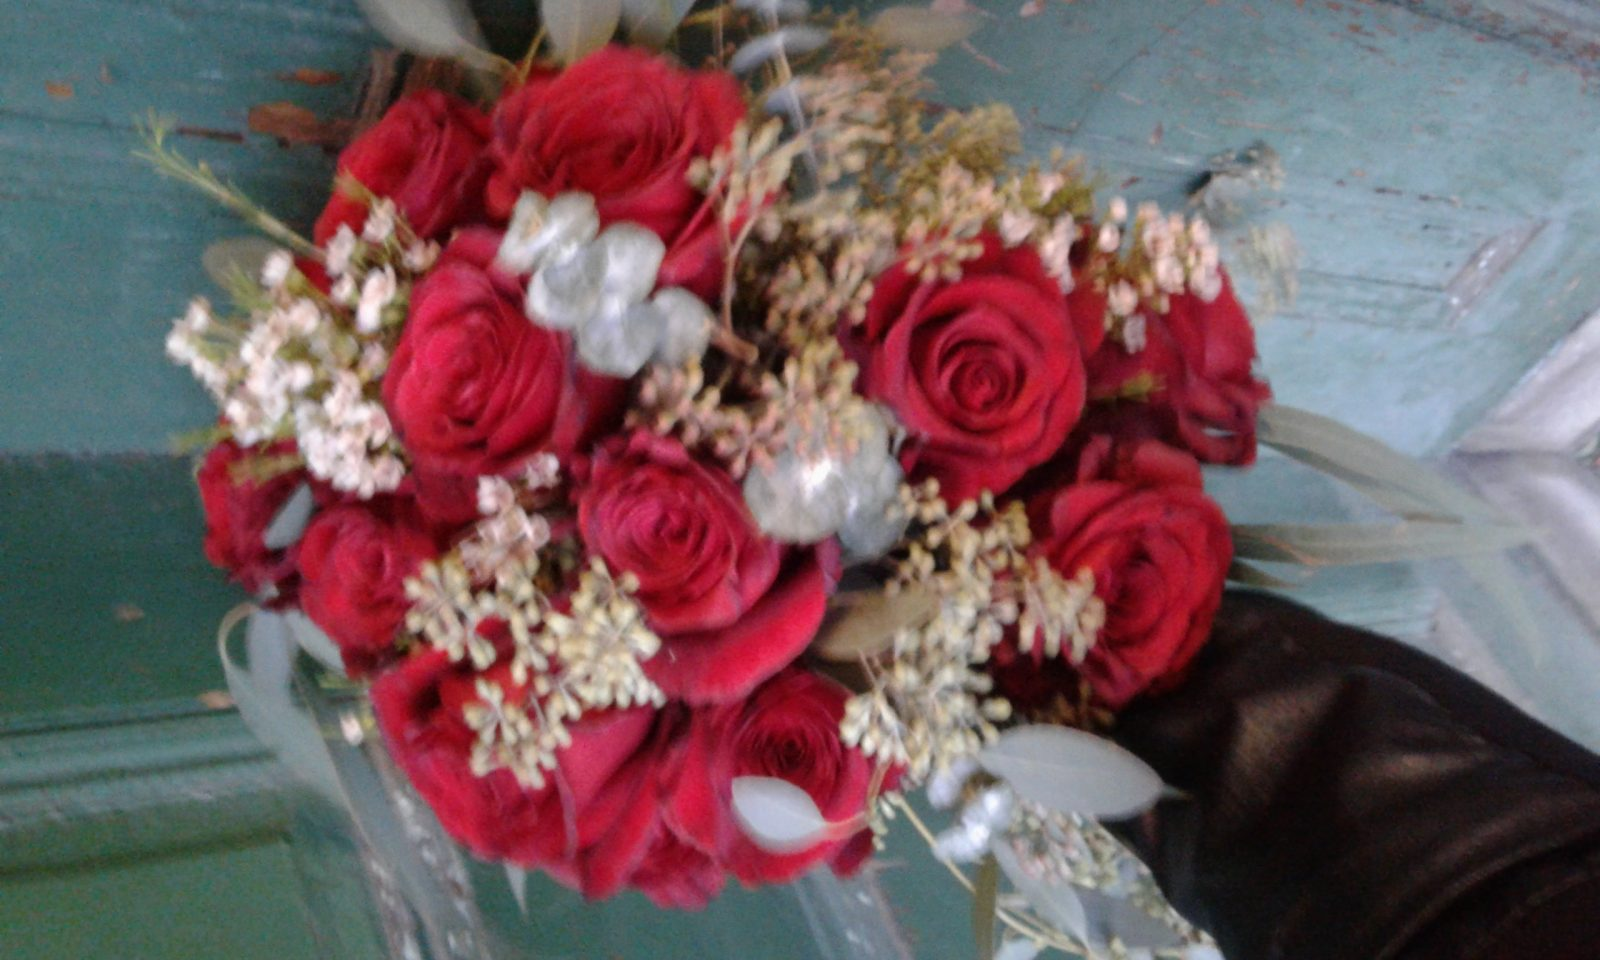 'SEXY RED ROSES' only at ROSE PETALS FLORIST-VALENTINE'S DAY 2018